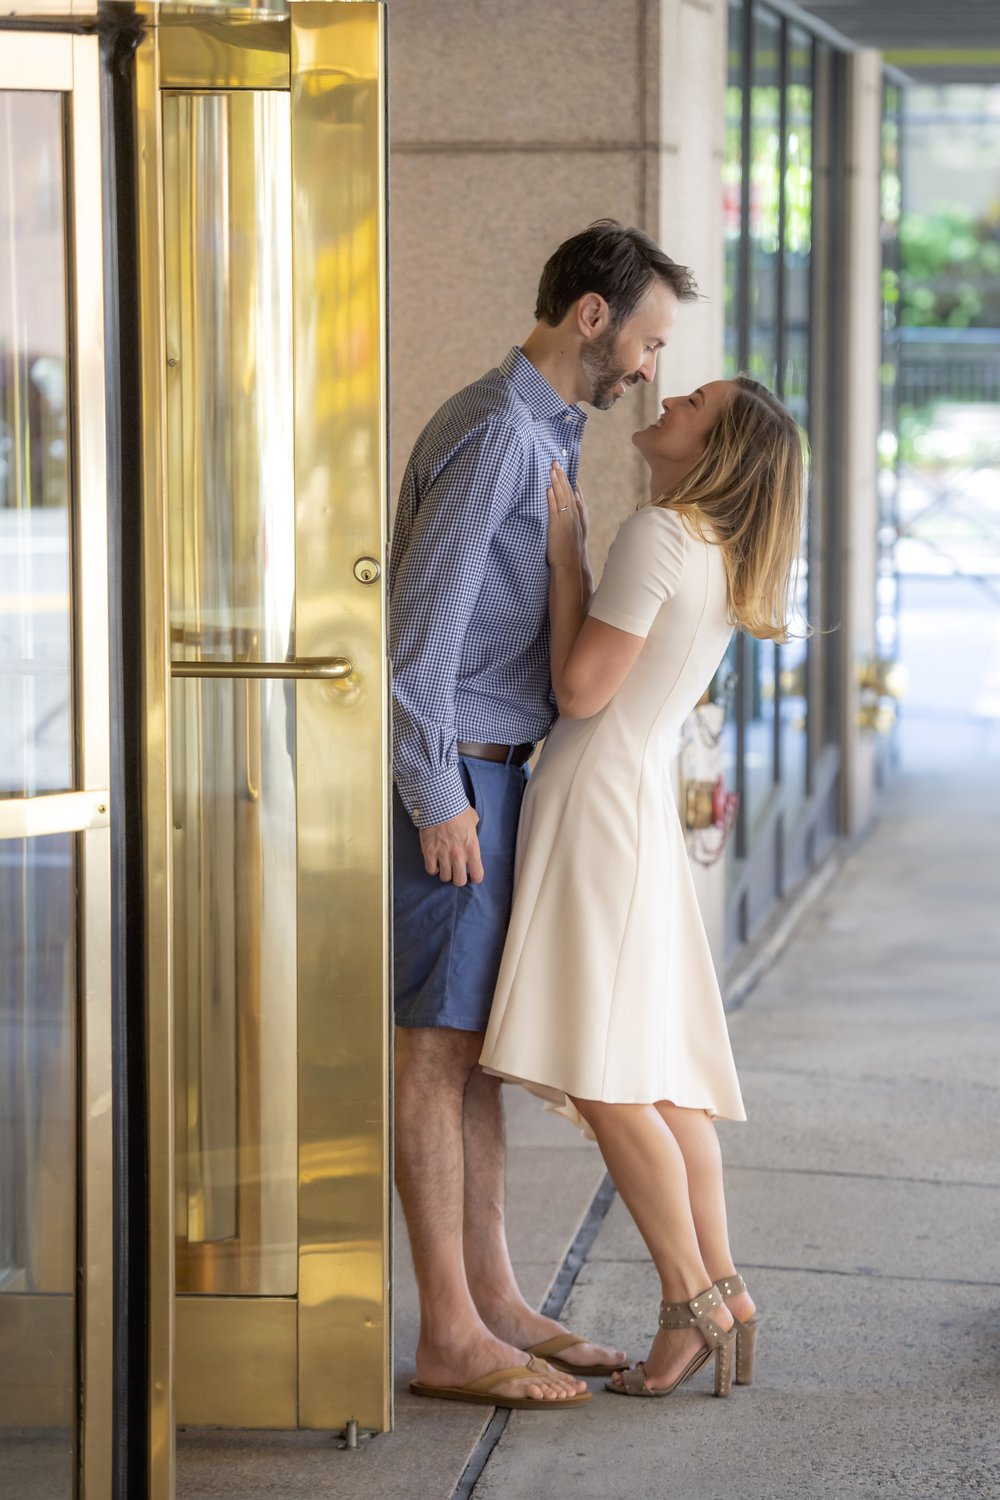 Christen & Chris in New York cCity by Unveiled-Weddings.com